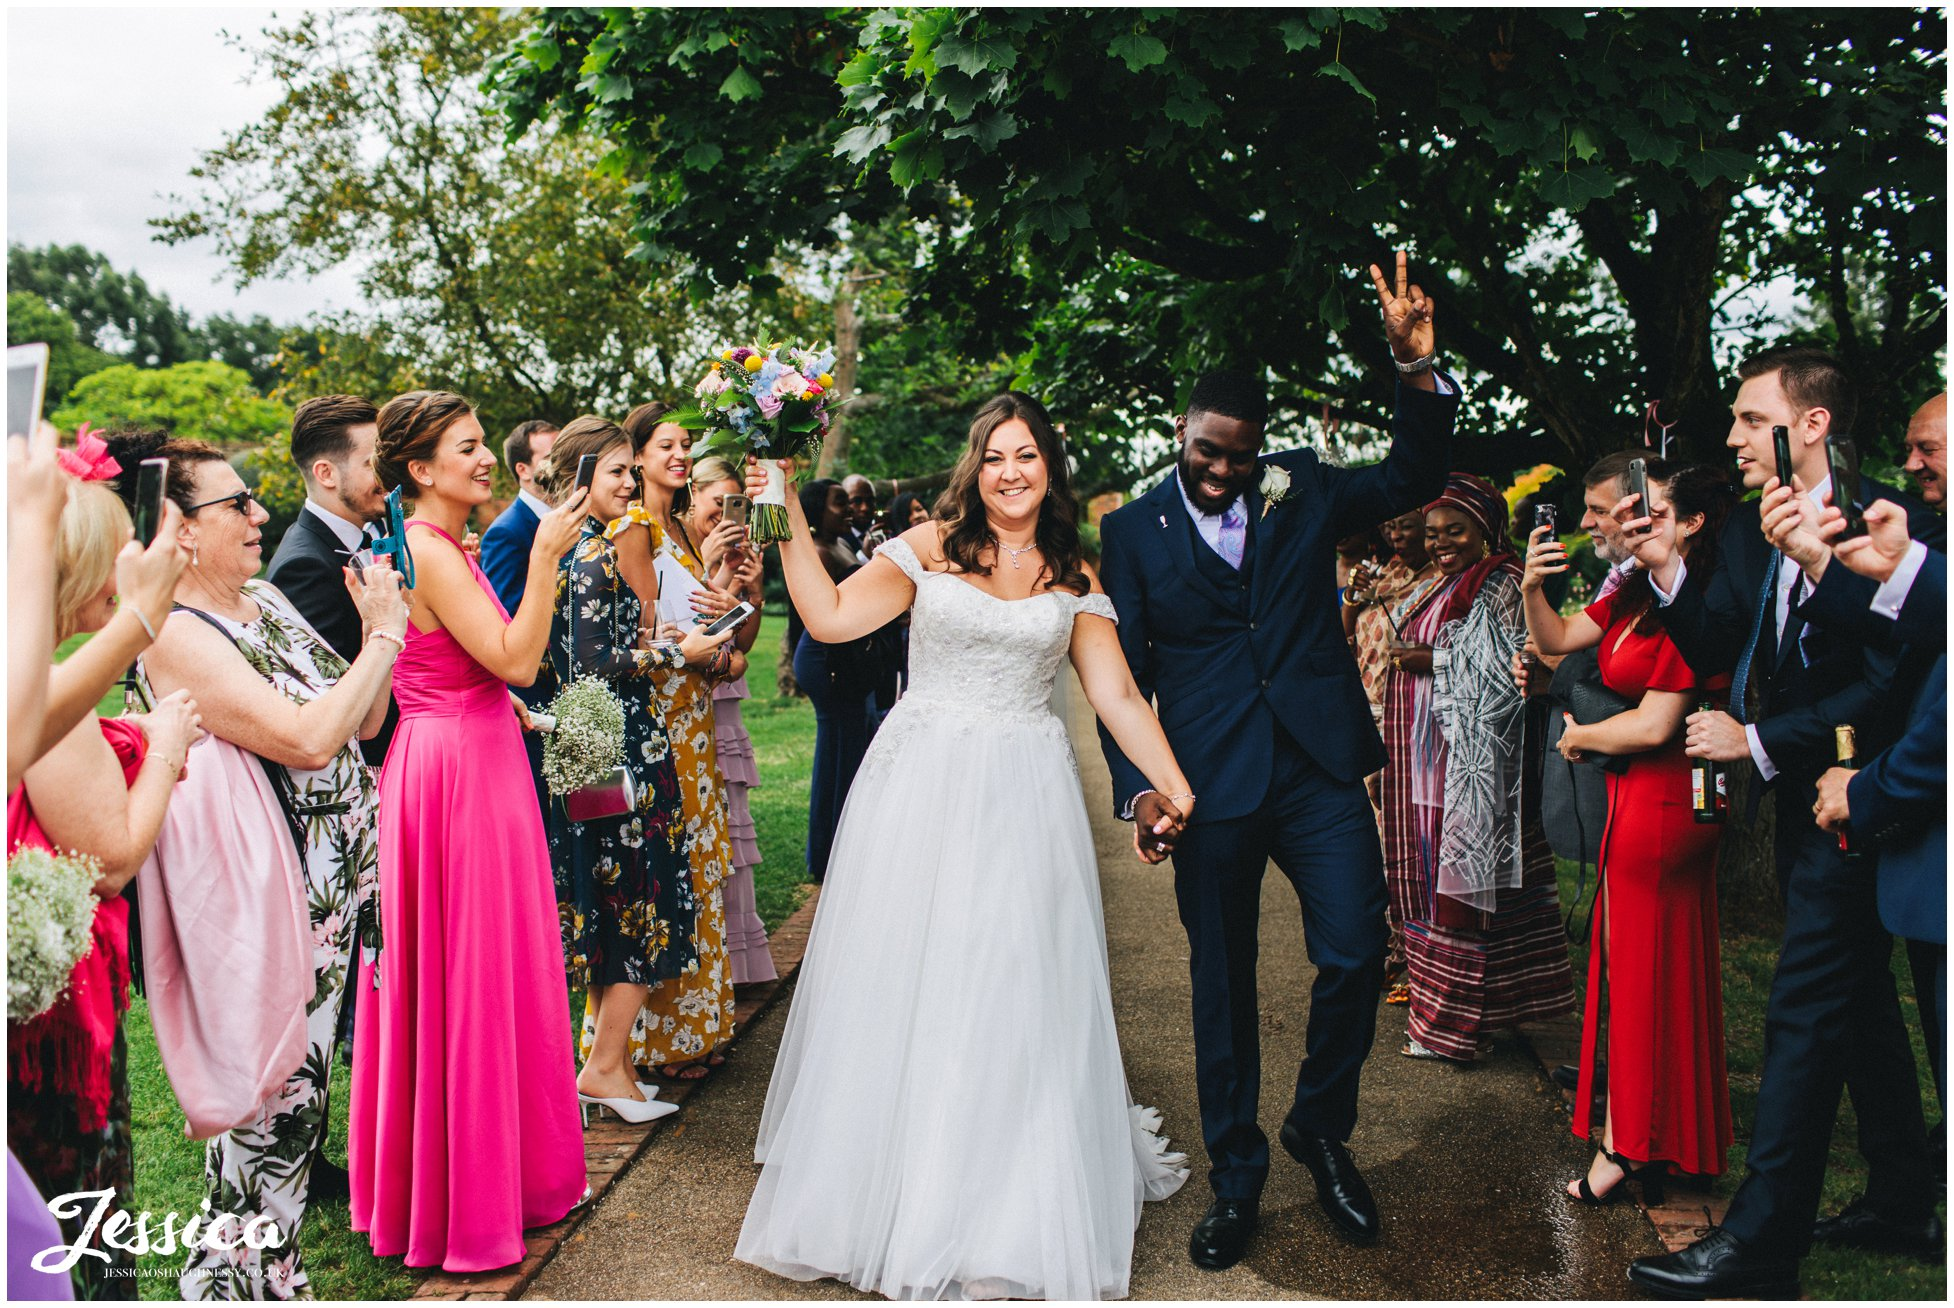 the newly wed's cheer as their guests applaud them